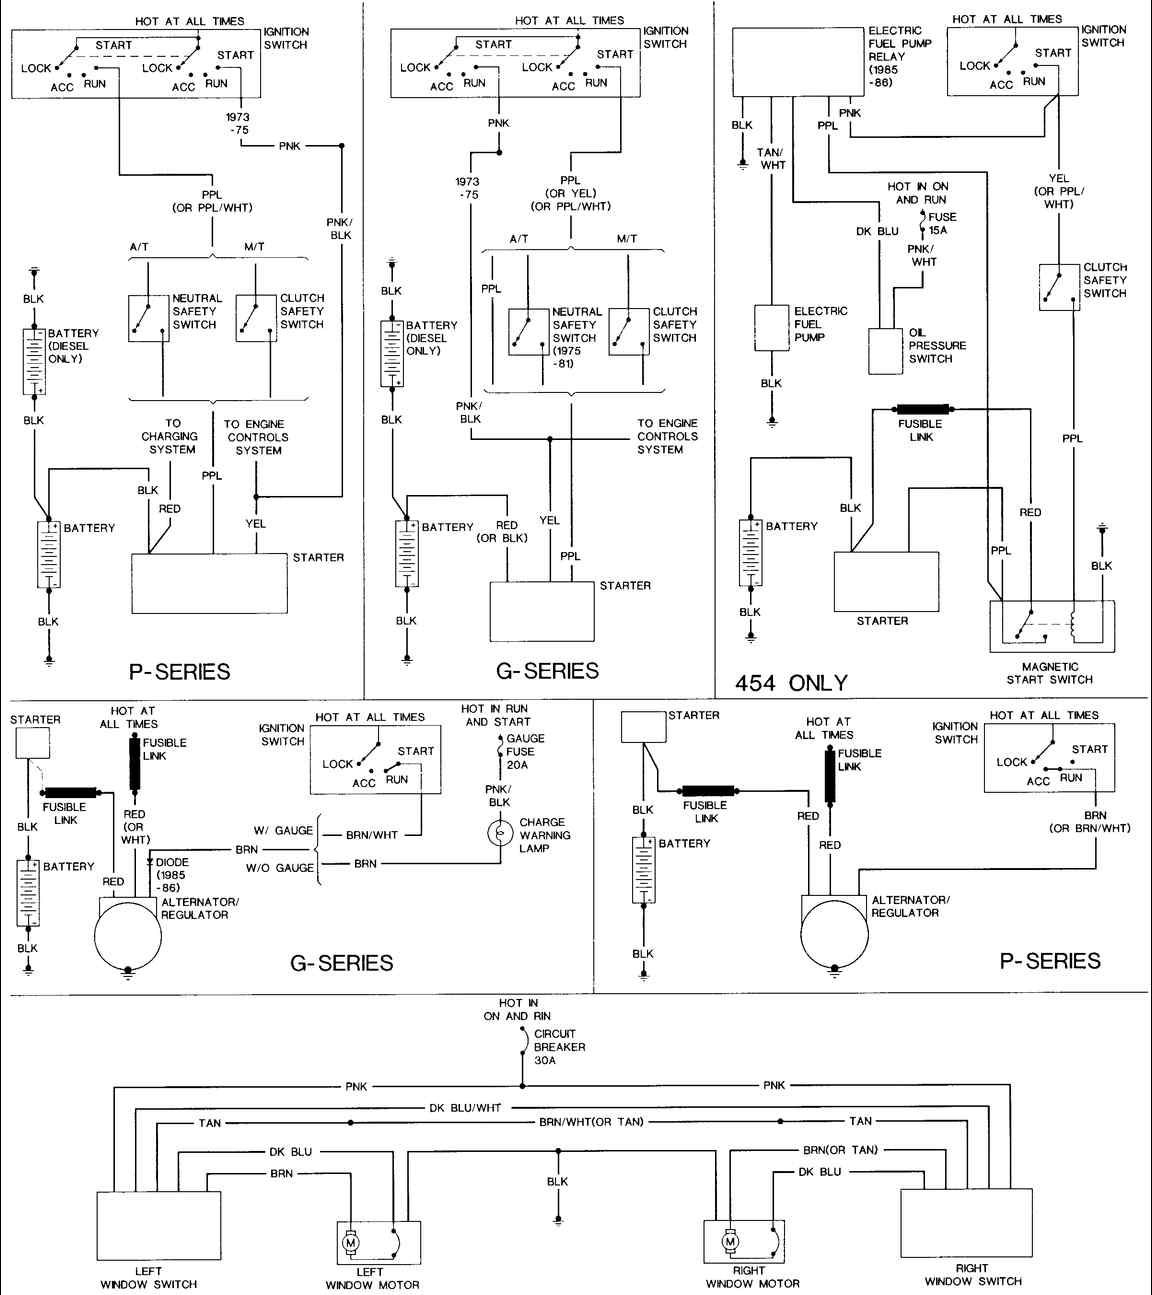 0c73623a181dc376dbb4777e2029d285 85 chevy truck wiring diagram 85 chevy van the steering column 1975 c10 wiring diagram at crackthecode.co